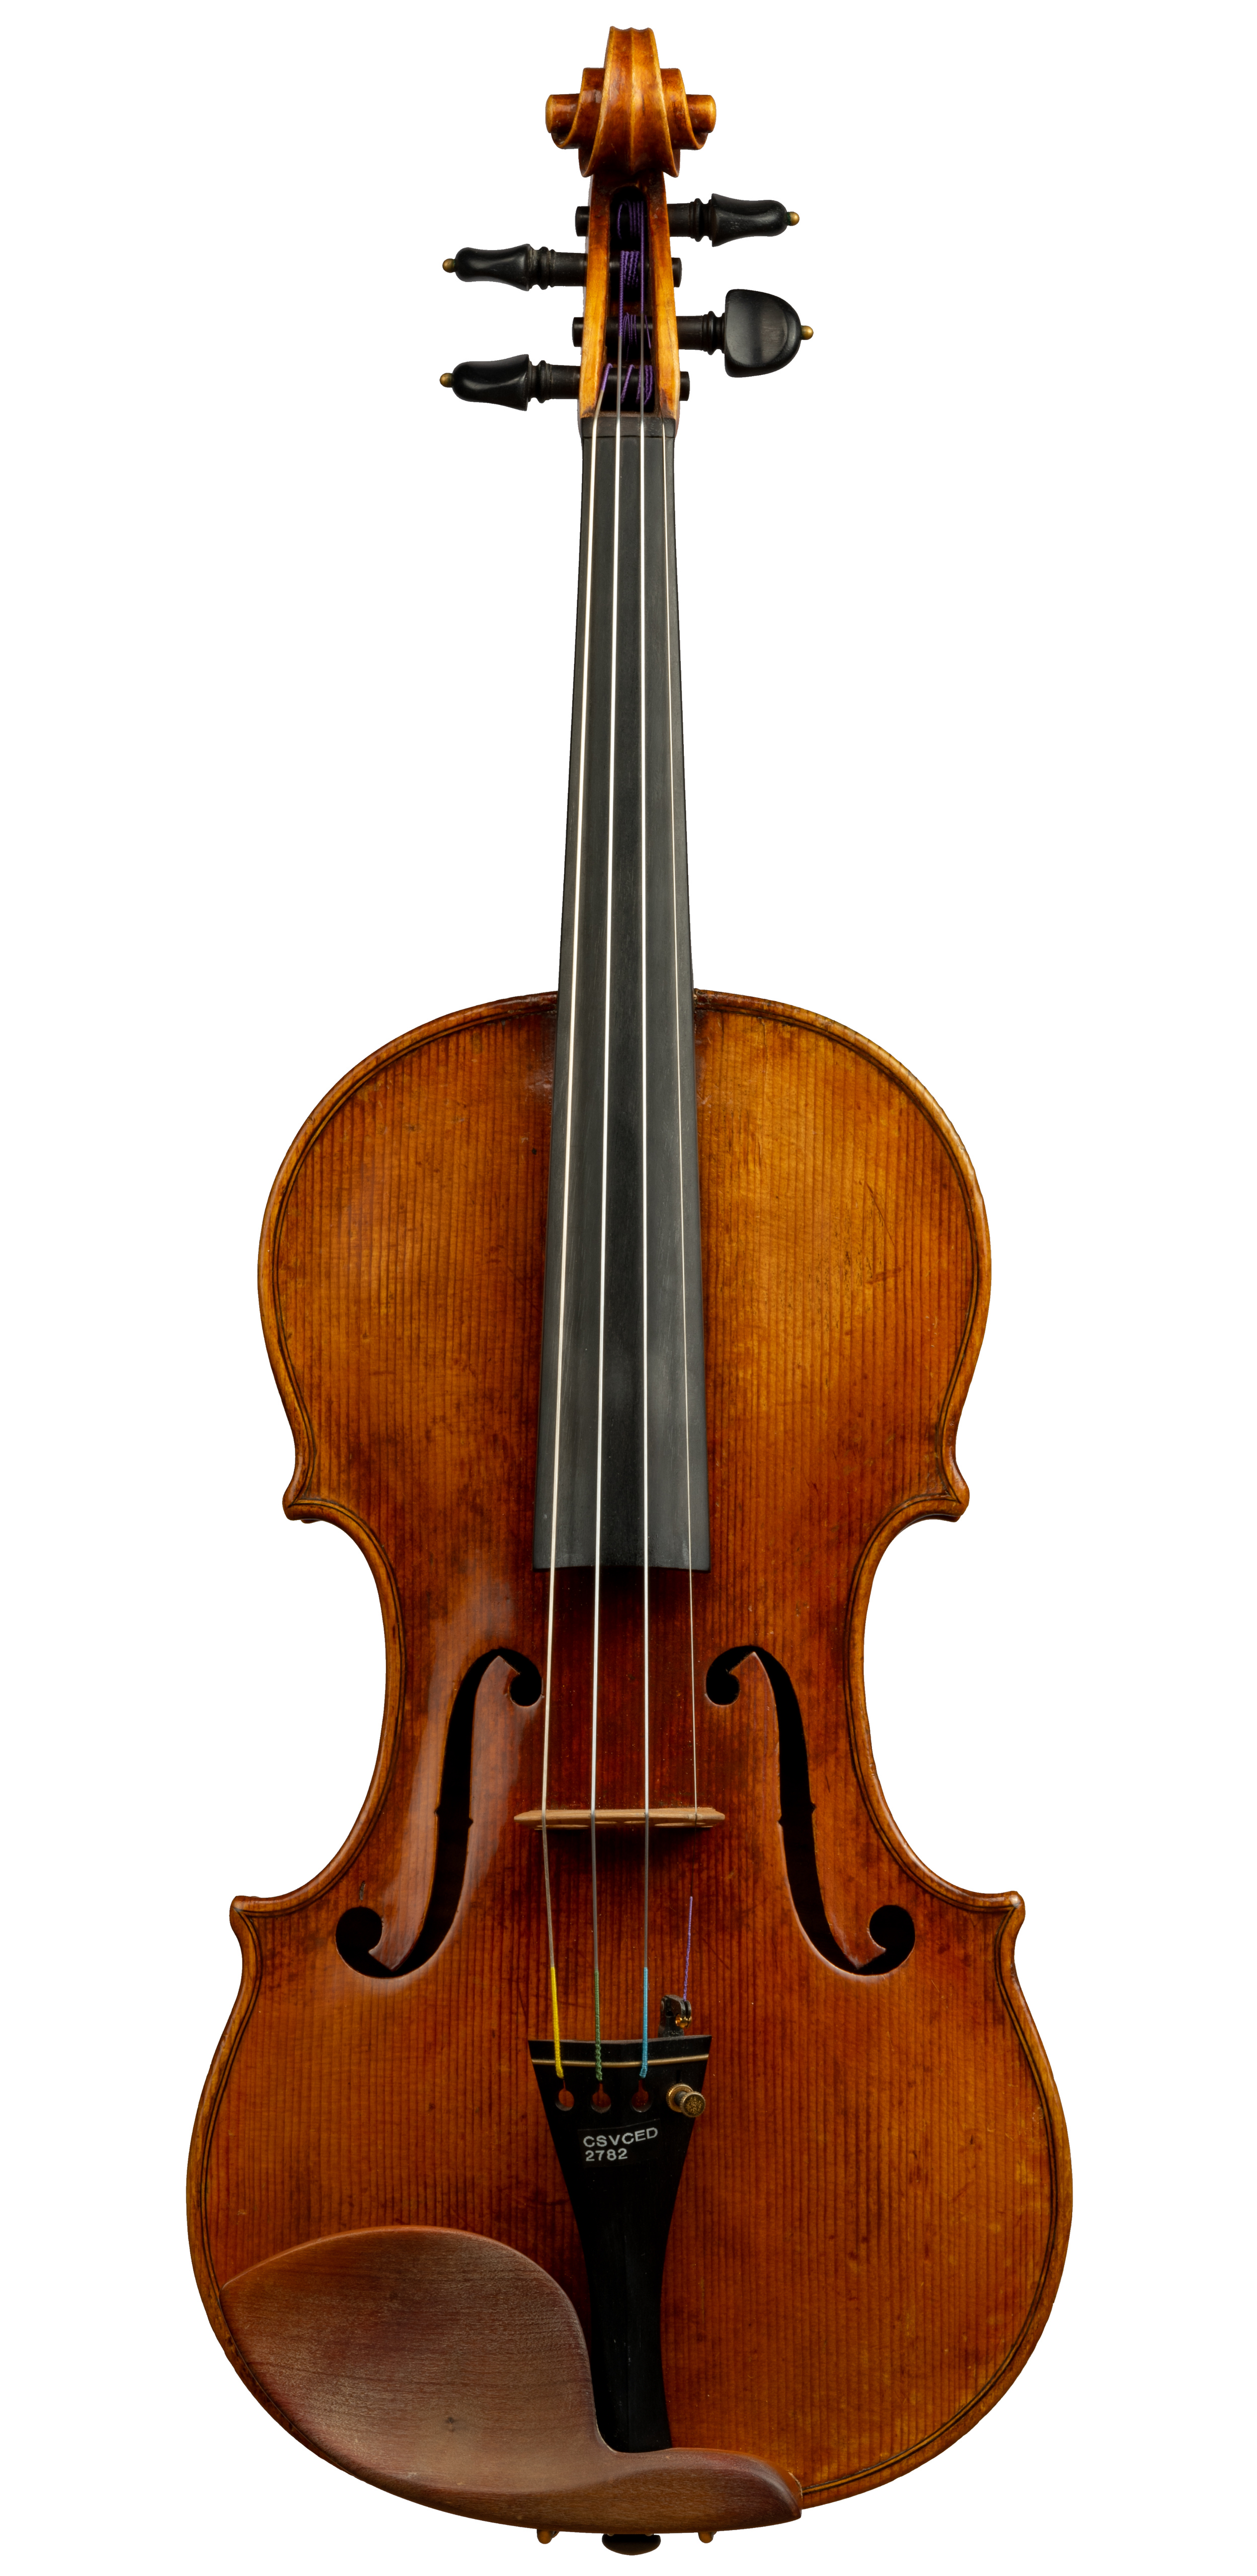 Unlabeled Czech Violin with illegible brand, 19th Century -